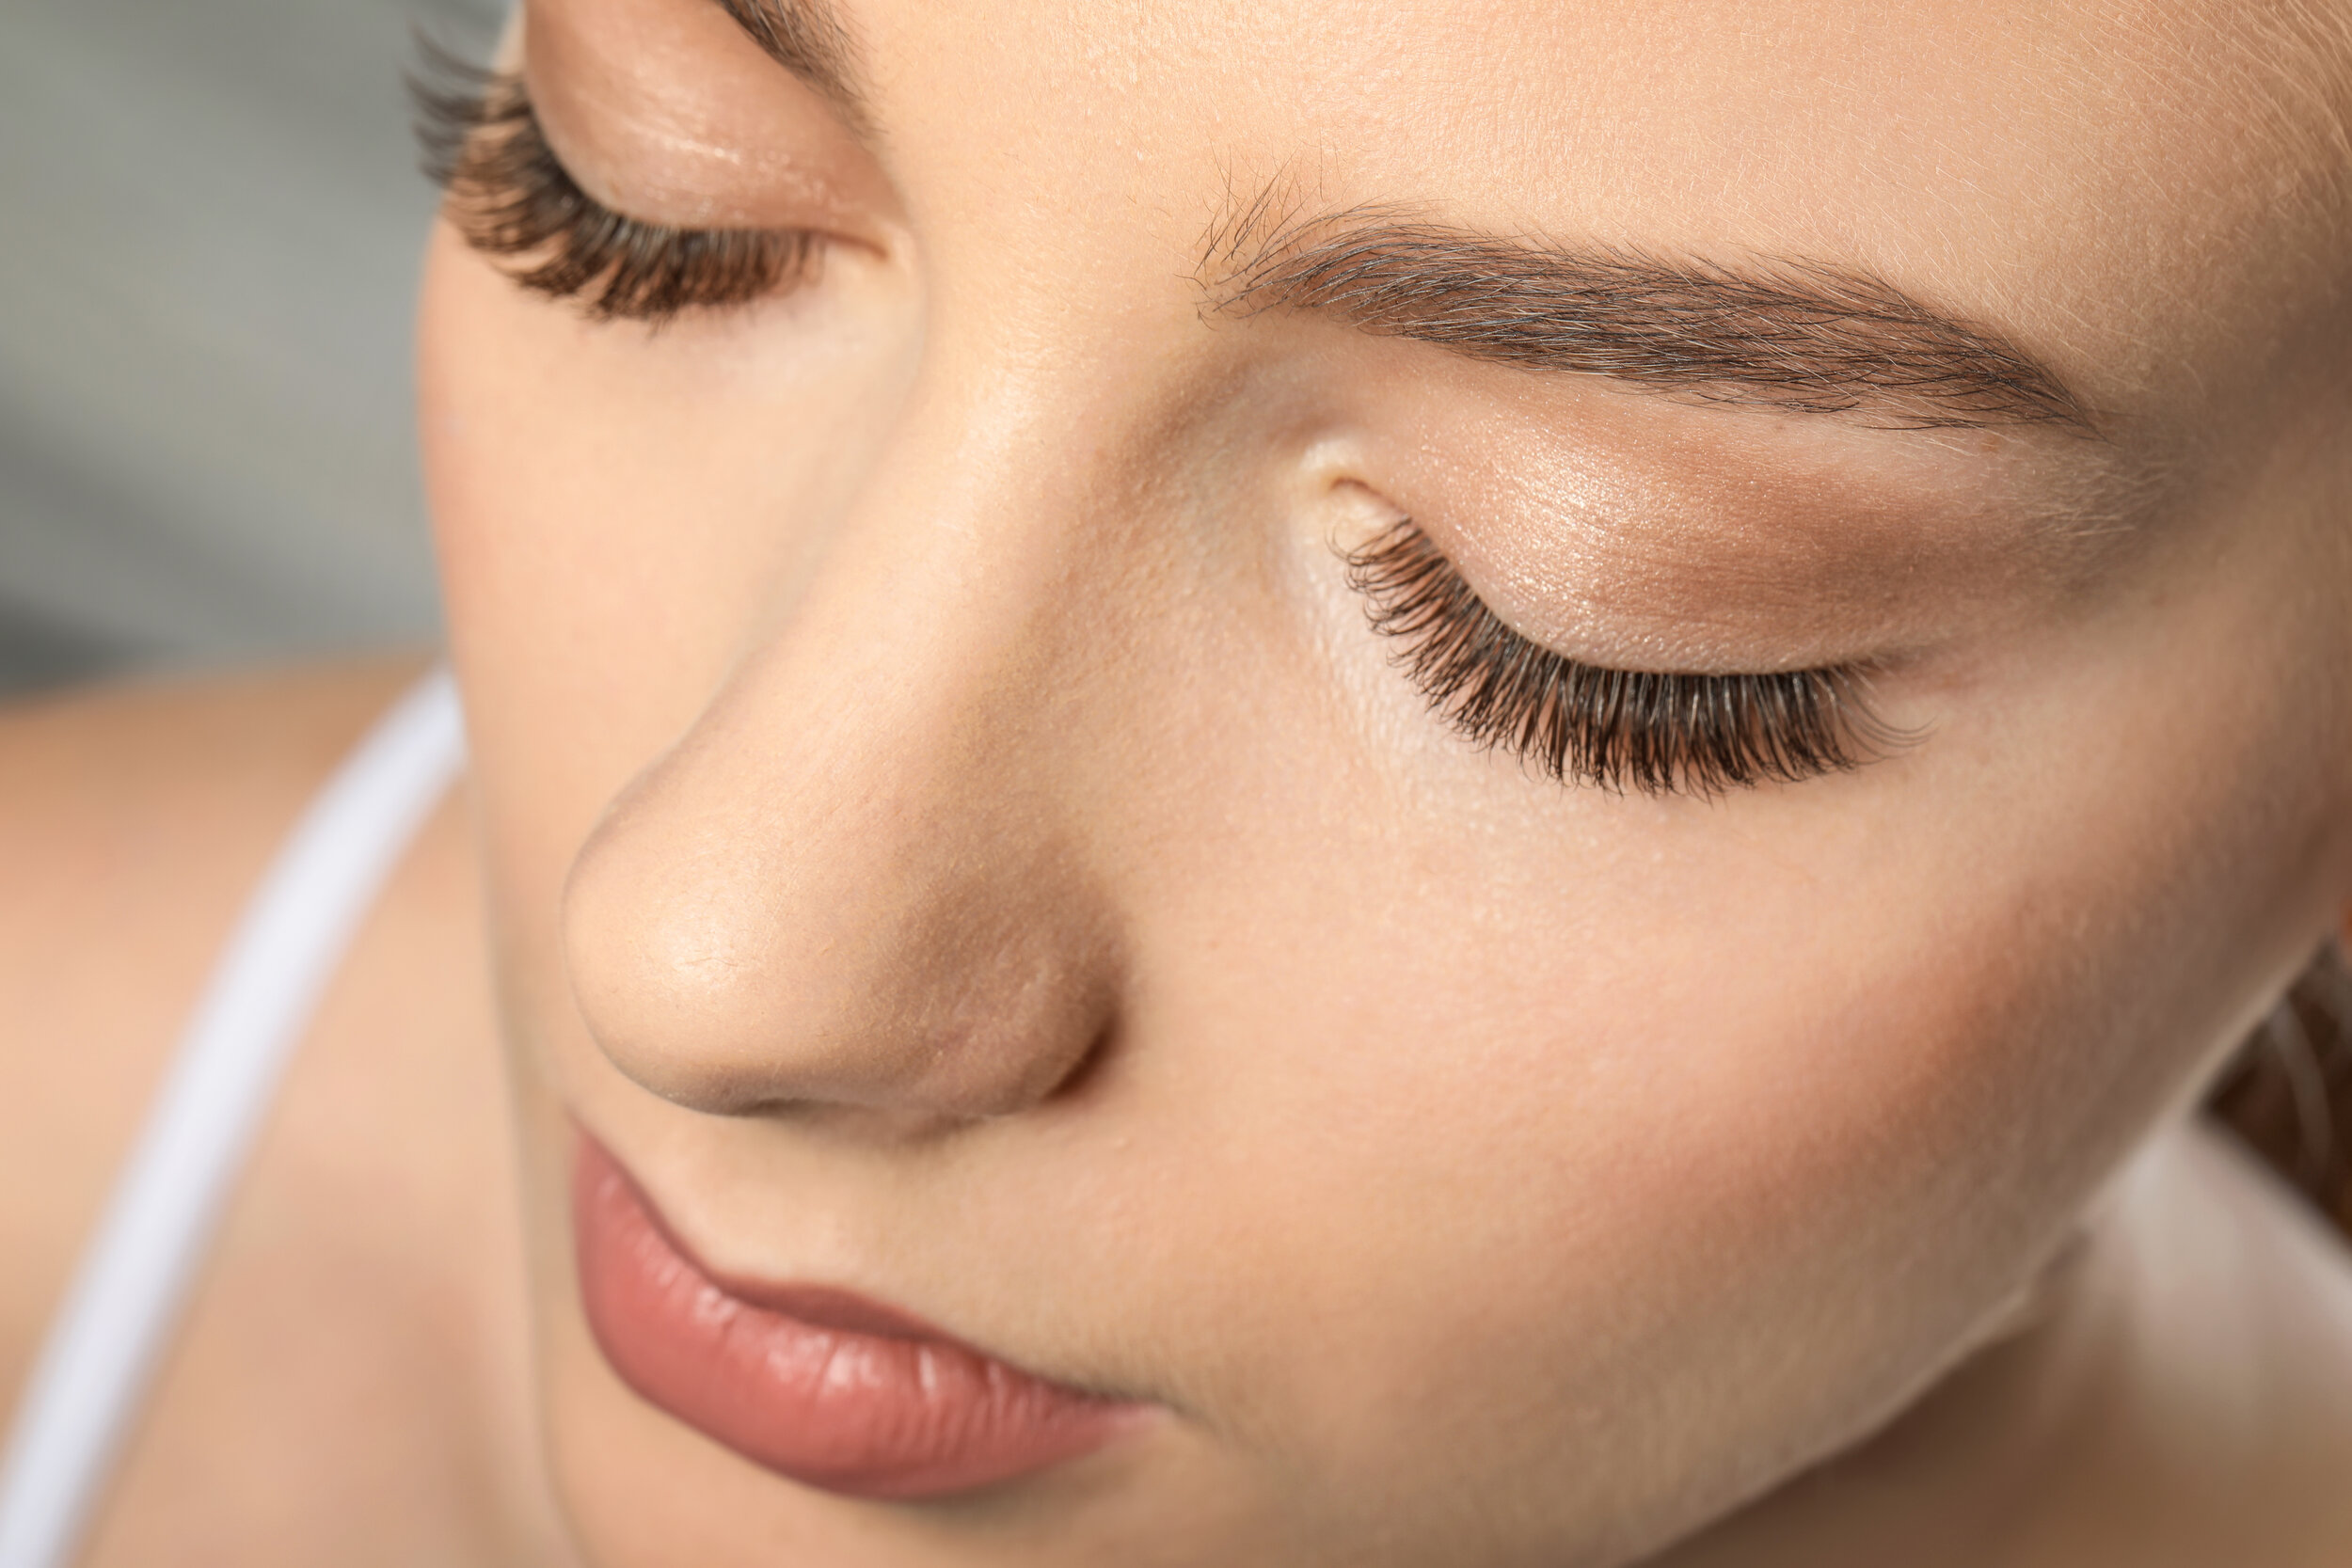 NATURALClassic Lash Extensions - Adding more length and colour to each of your natural lashes with custom eye shape, your natural lashes and personal preference. Approximately 90-100 lashes per eye.160Book Online Now